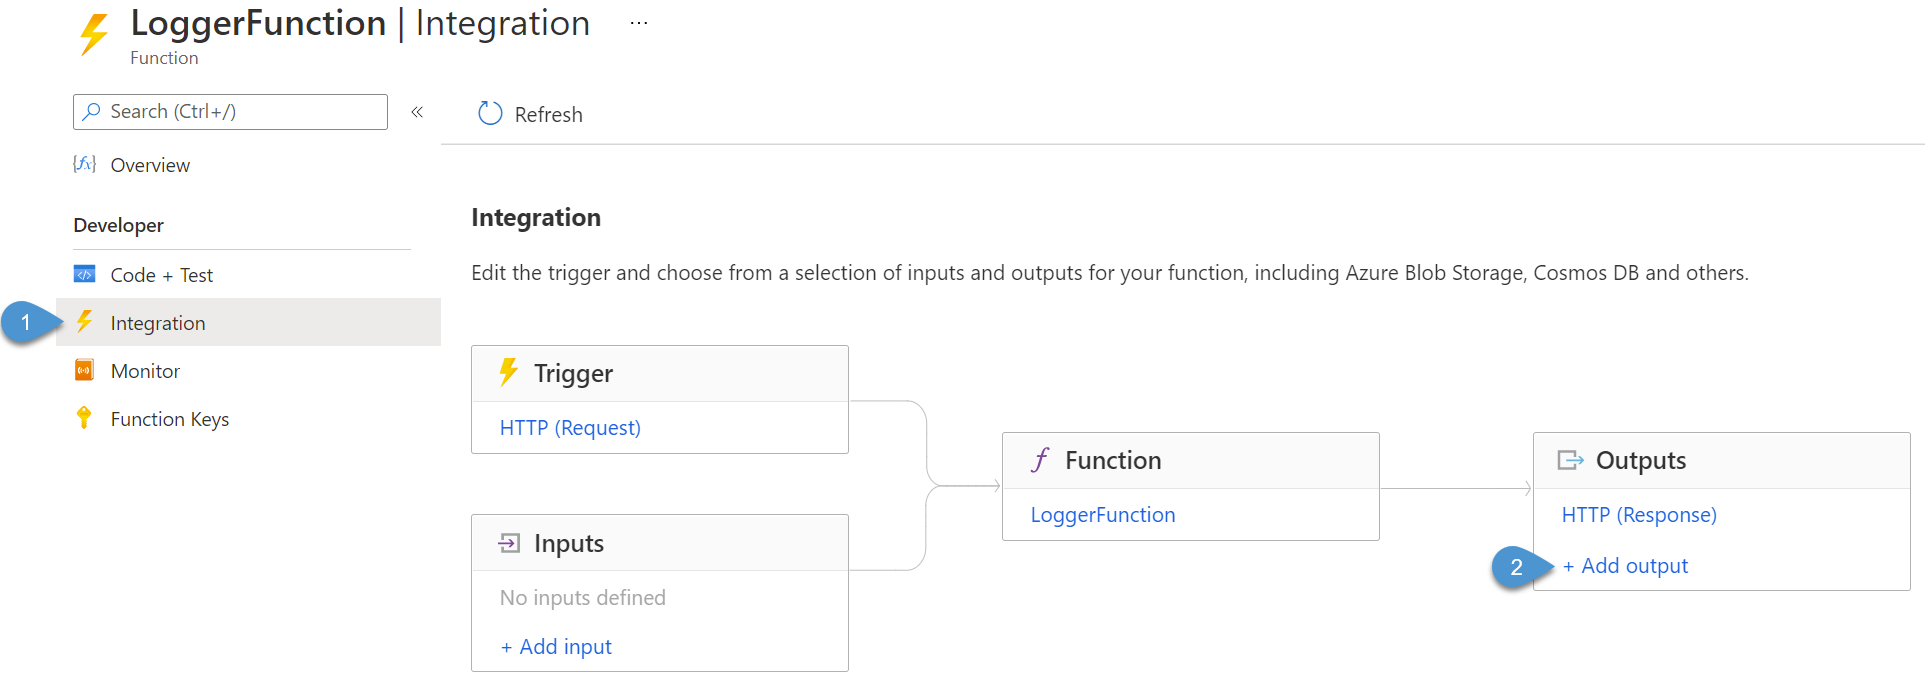 Viewing and adding function integrations